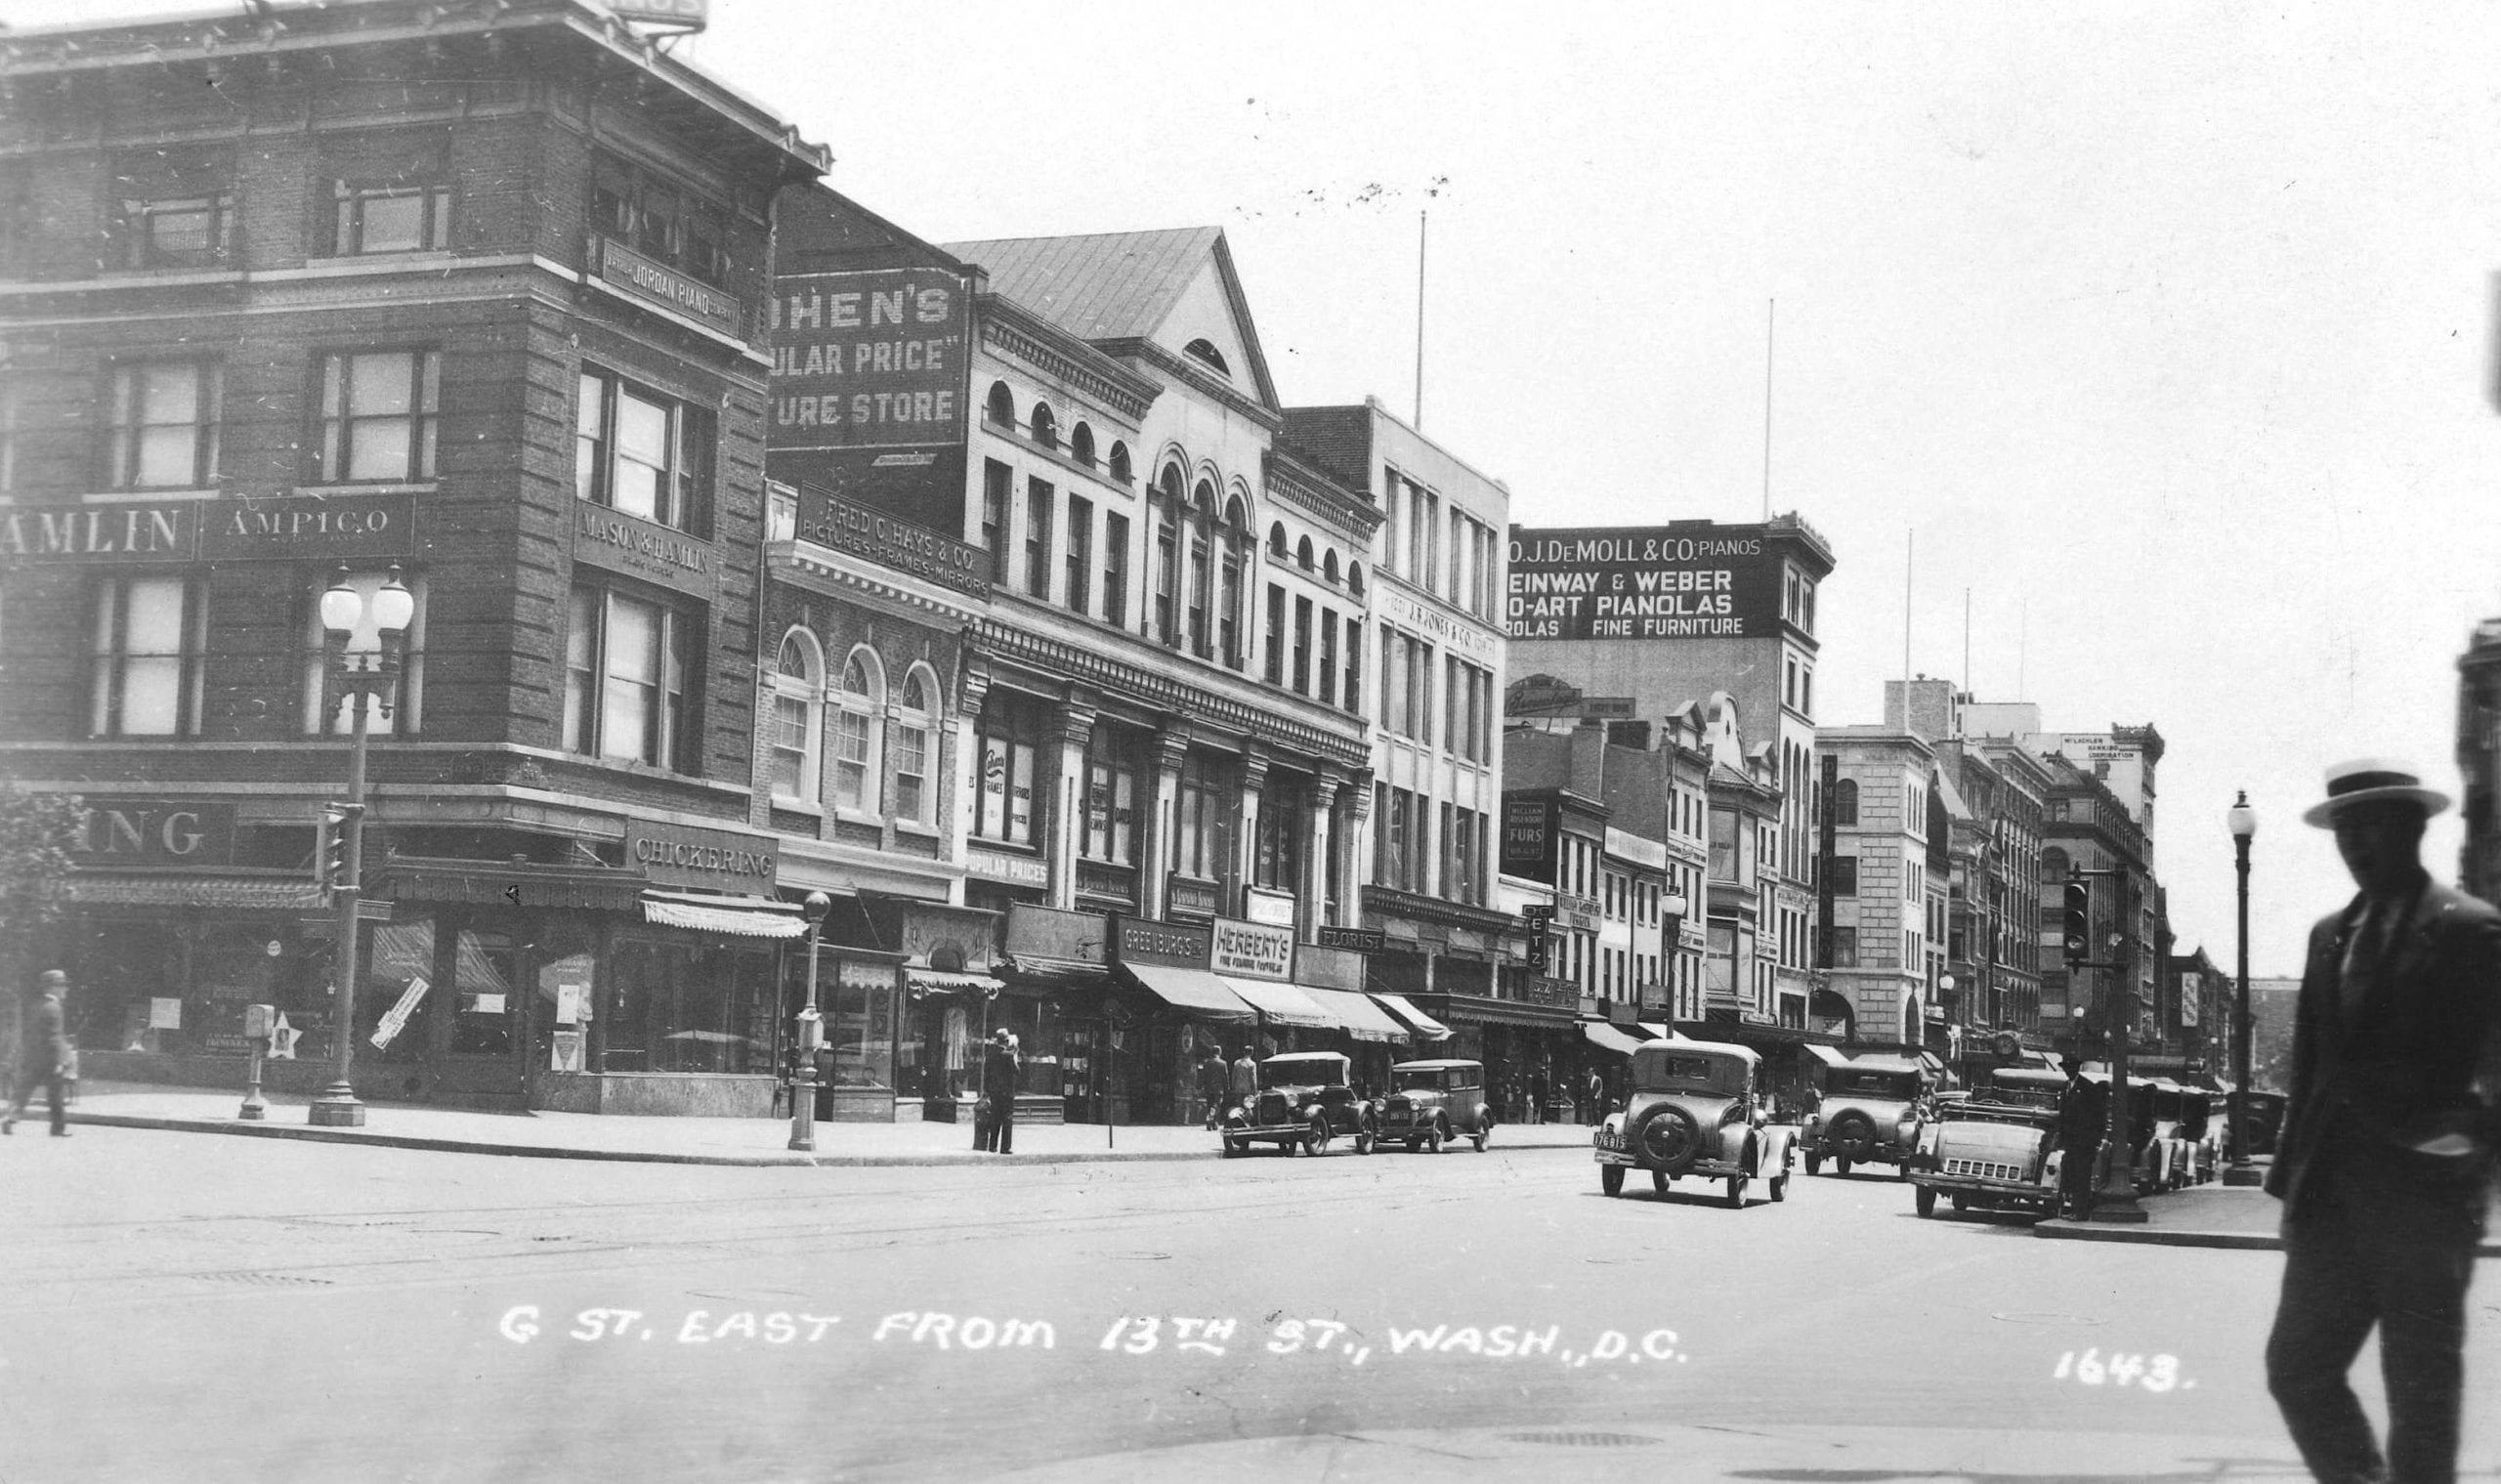 What Did G Street Look Like in the 1930s?